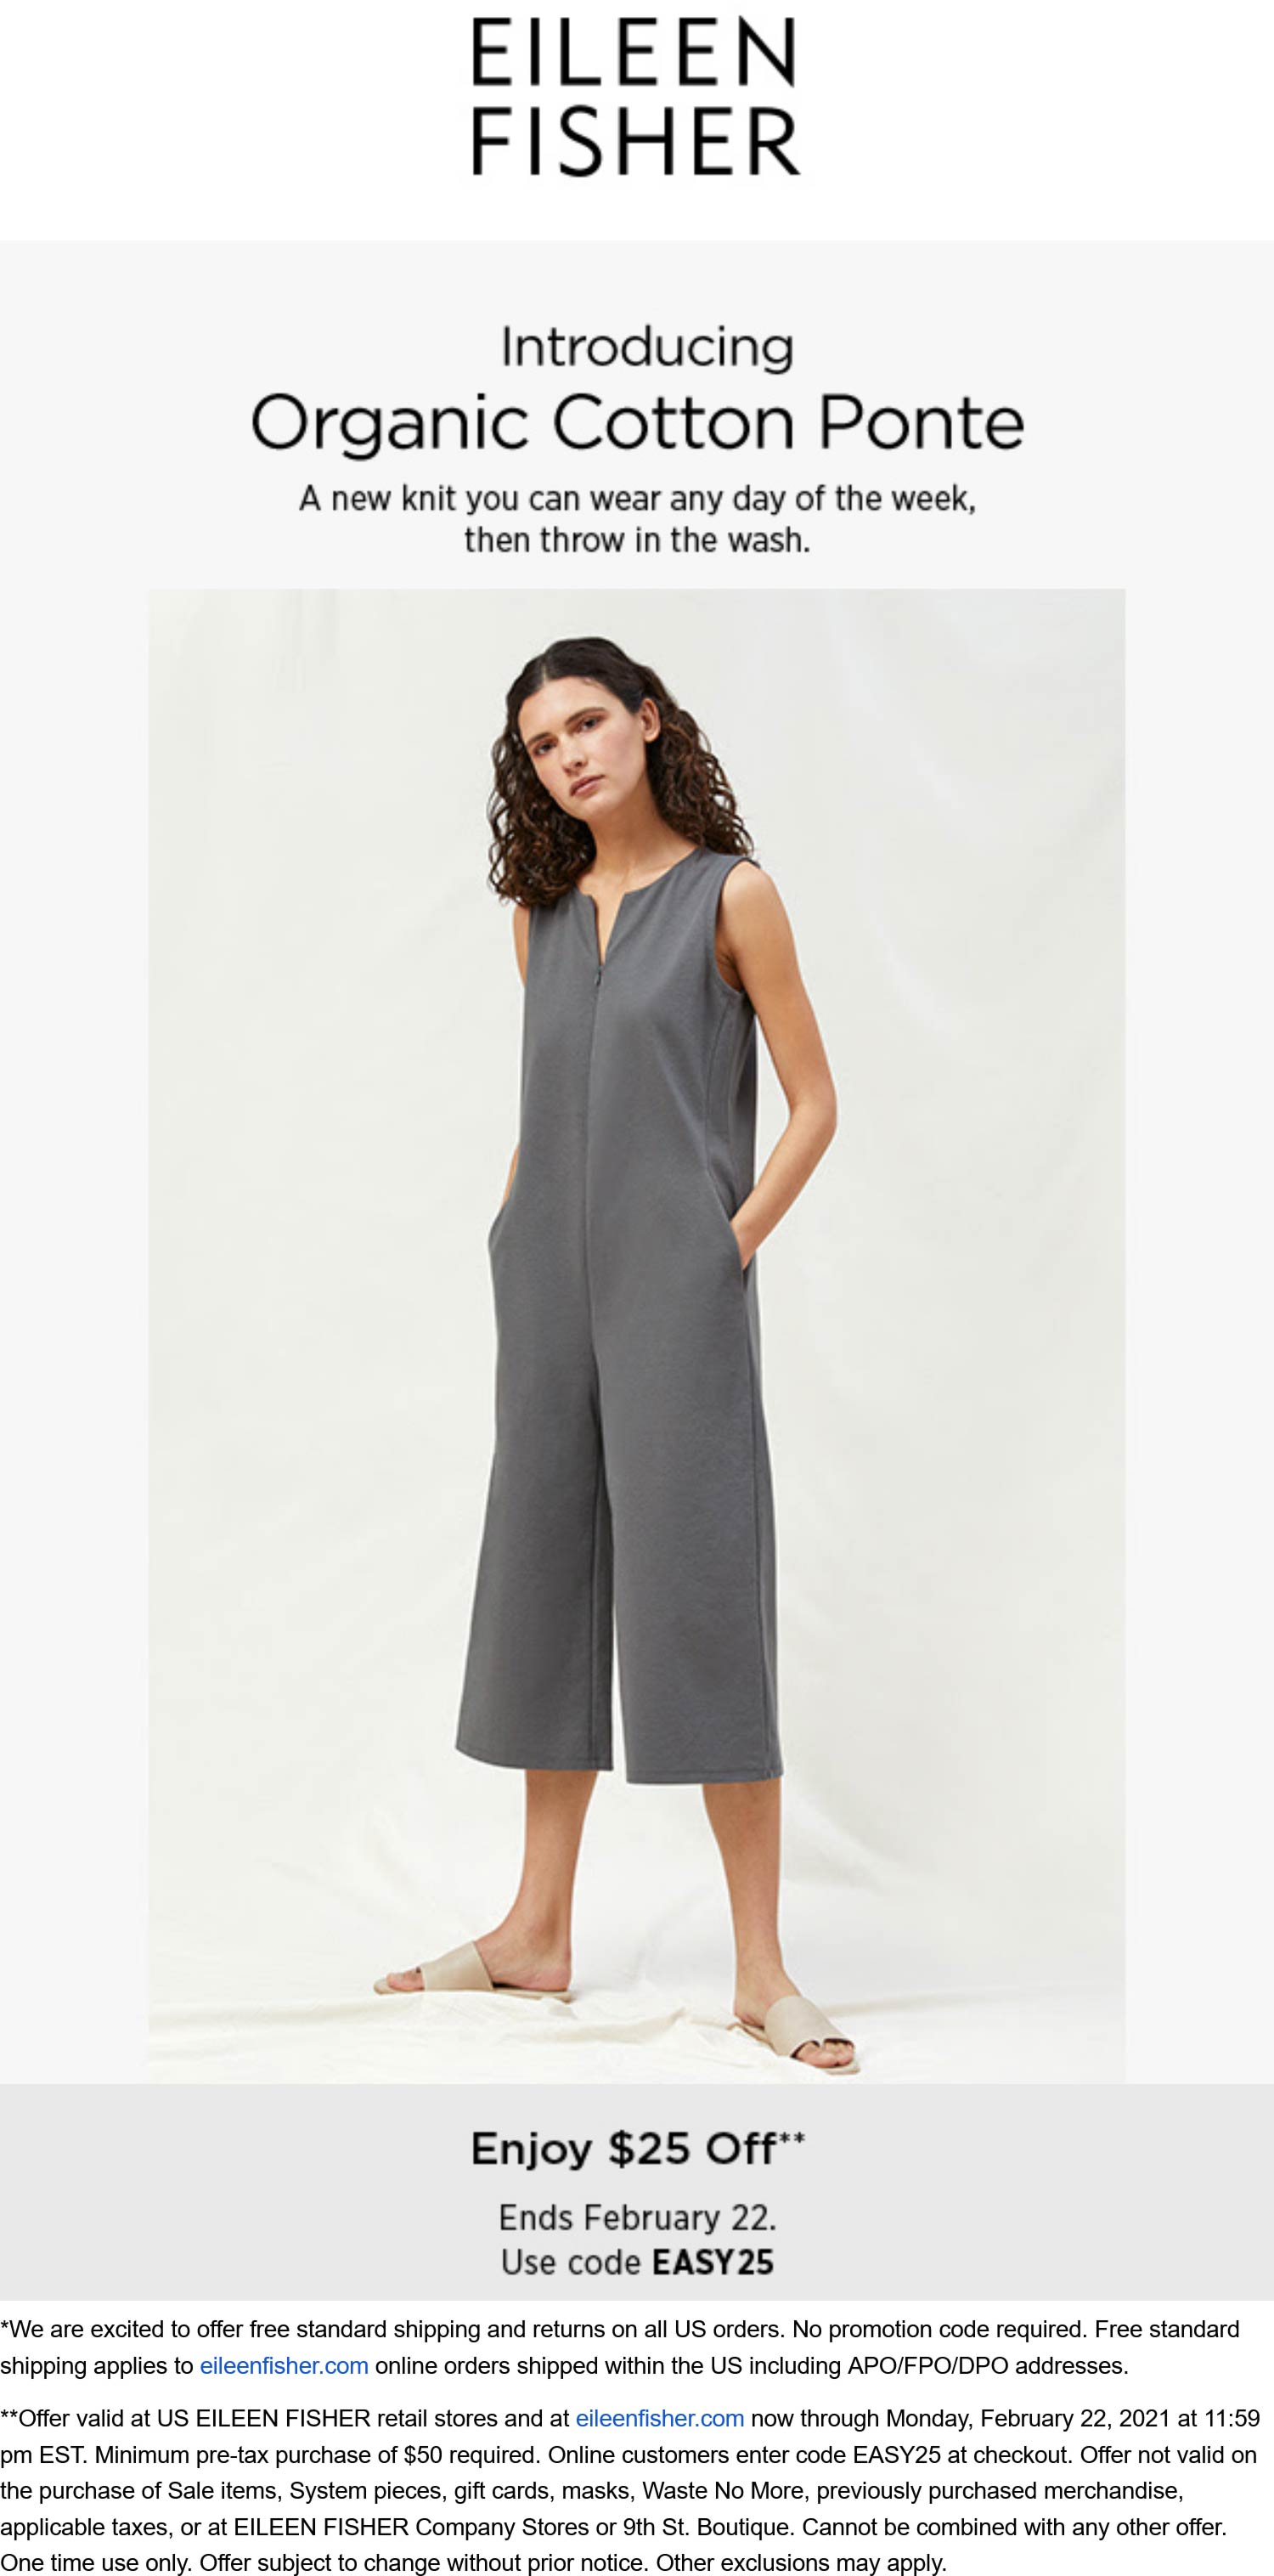 Eileen Fisher coupons & promo code for [March 2021]